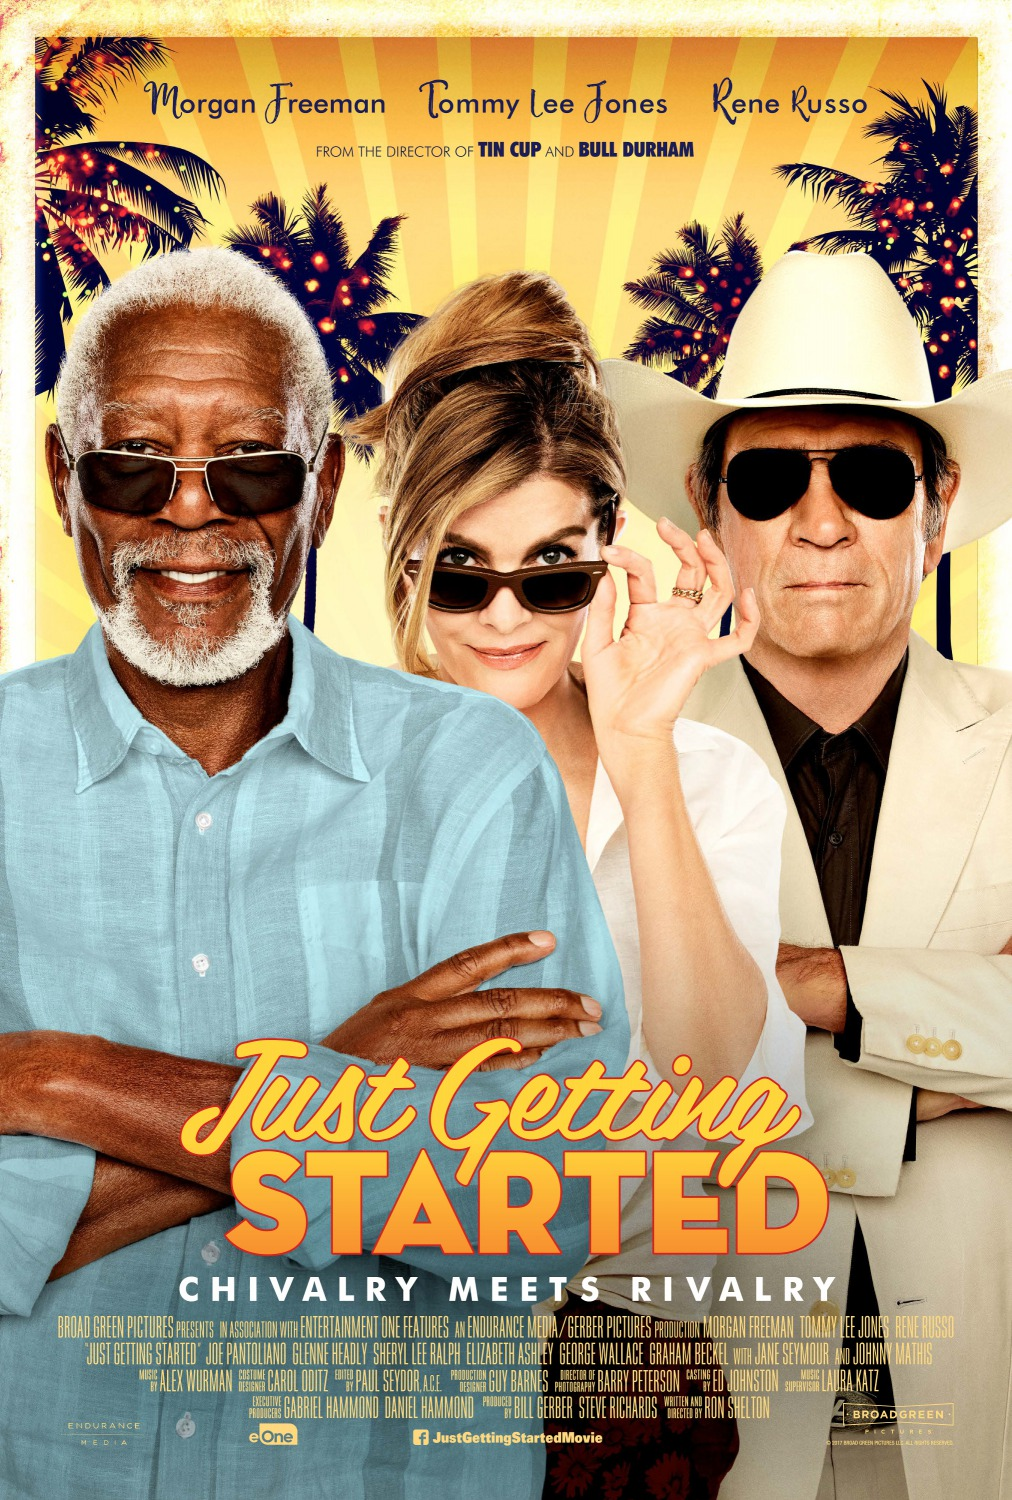 Image result for just getting started movie poster